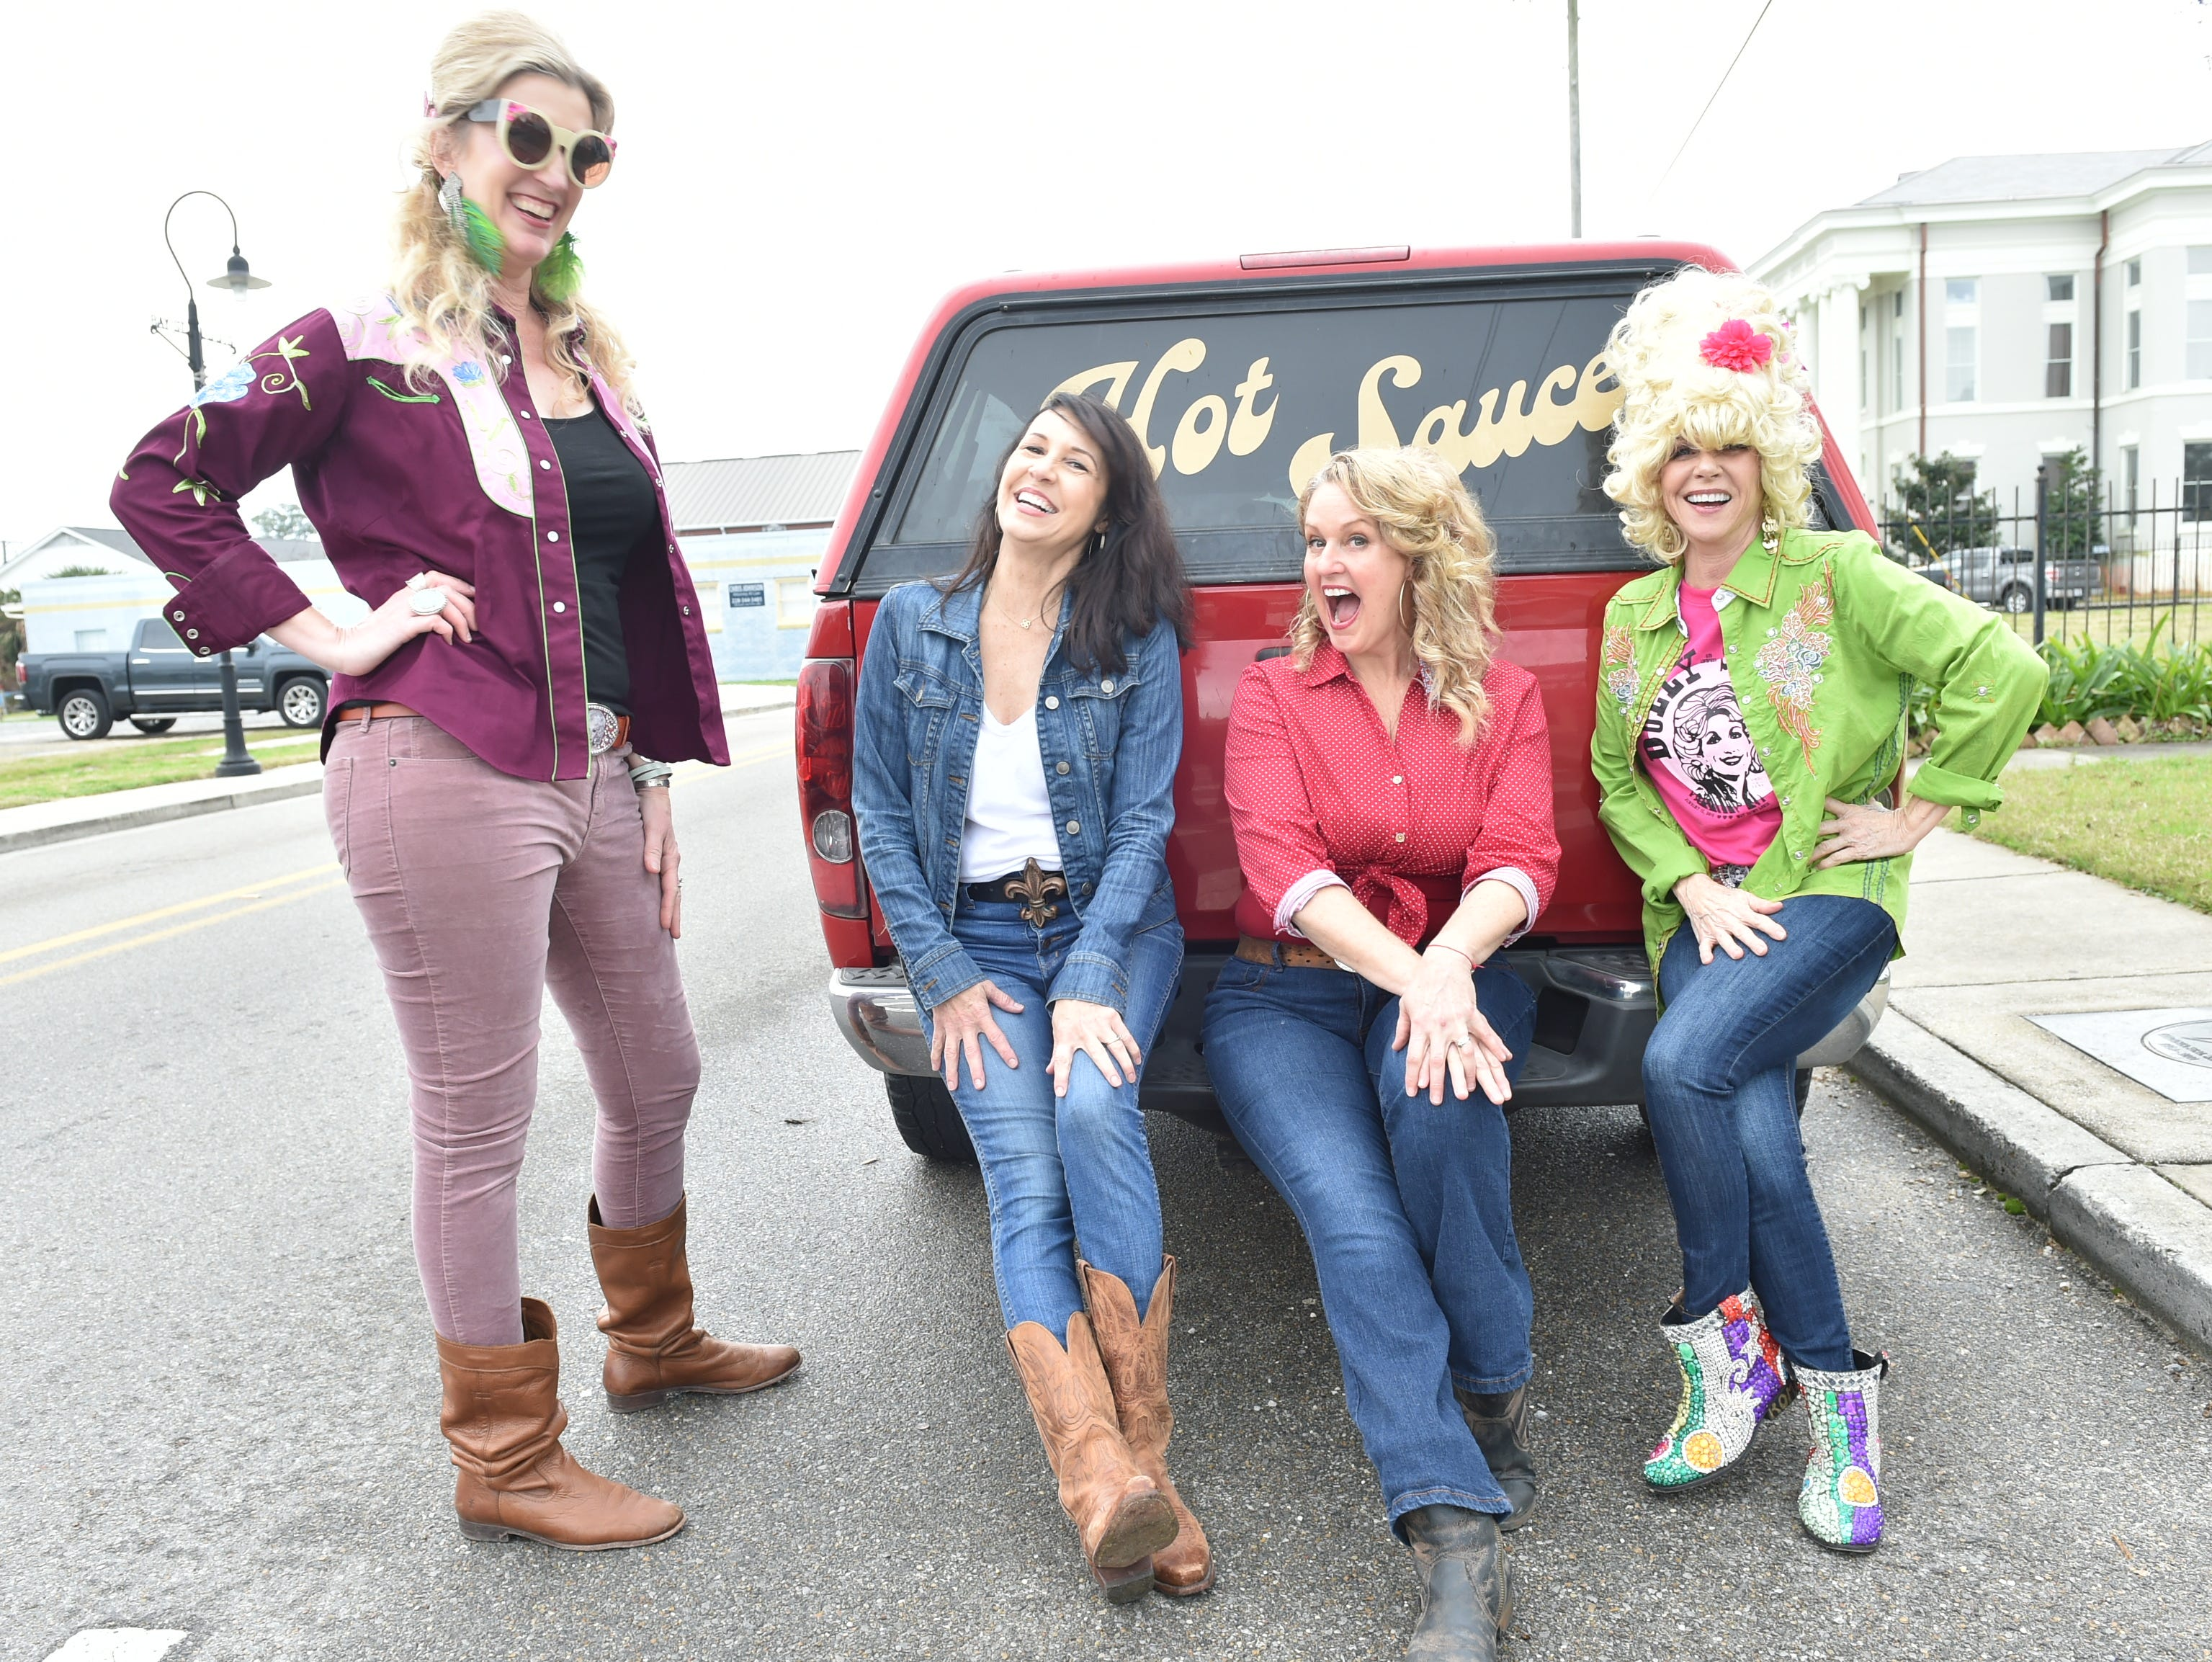 Left to right, Ann Madden, Connie Bourgeois, Alicein Schwabacher and Sandy Maggio hangout on the bumper of a truck during the 4th annual Dolly Should festival-a Dolly Parton-themed event. The hope is Parton will come visit Bay St. Louis. Saturday, Jan. 12, 2019.